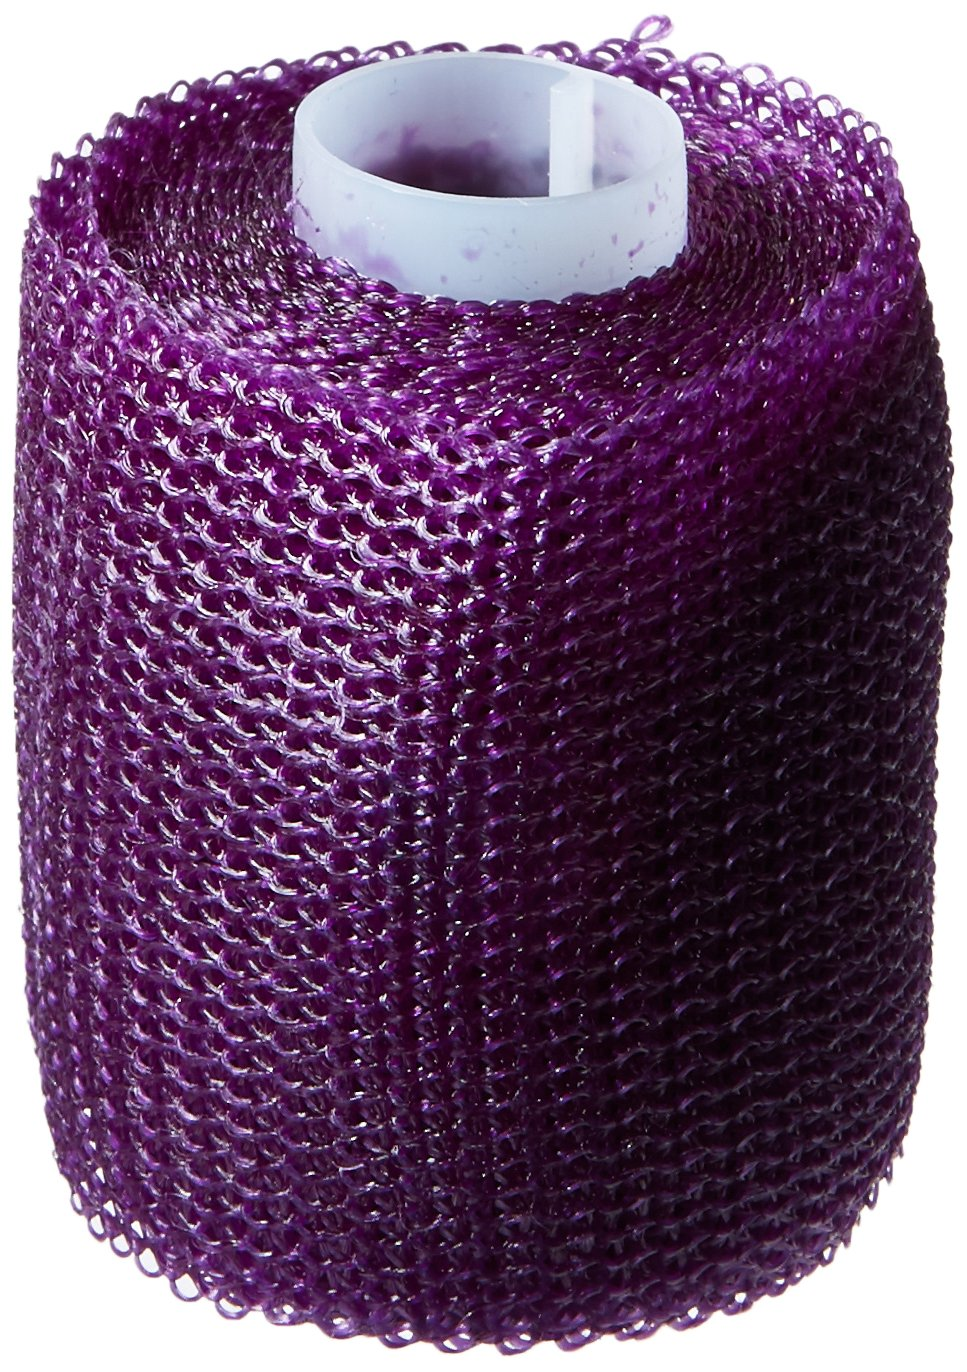 3M Health Care 82102U Soft Casting Tape, 2'' x 4 yd. Size, Purple (Pack of 10) by 3M Health Care